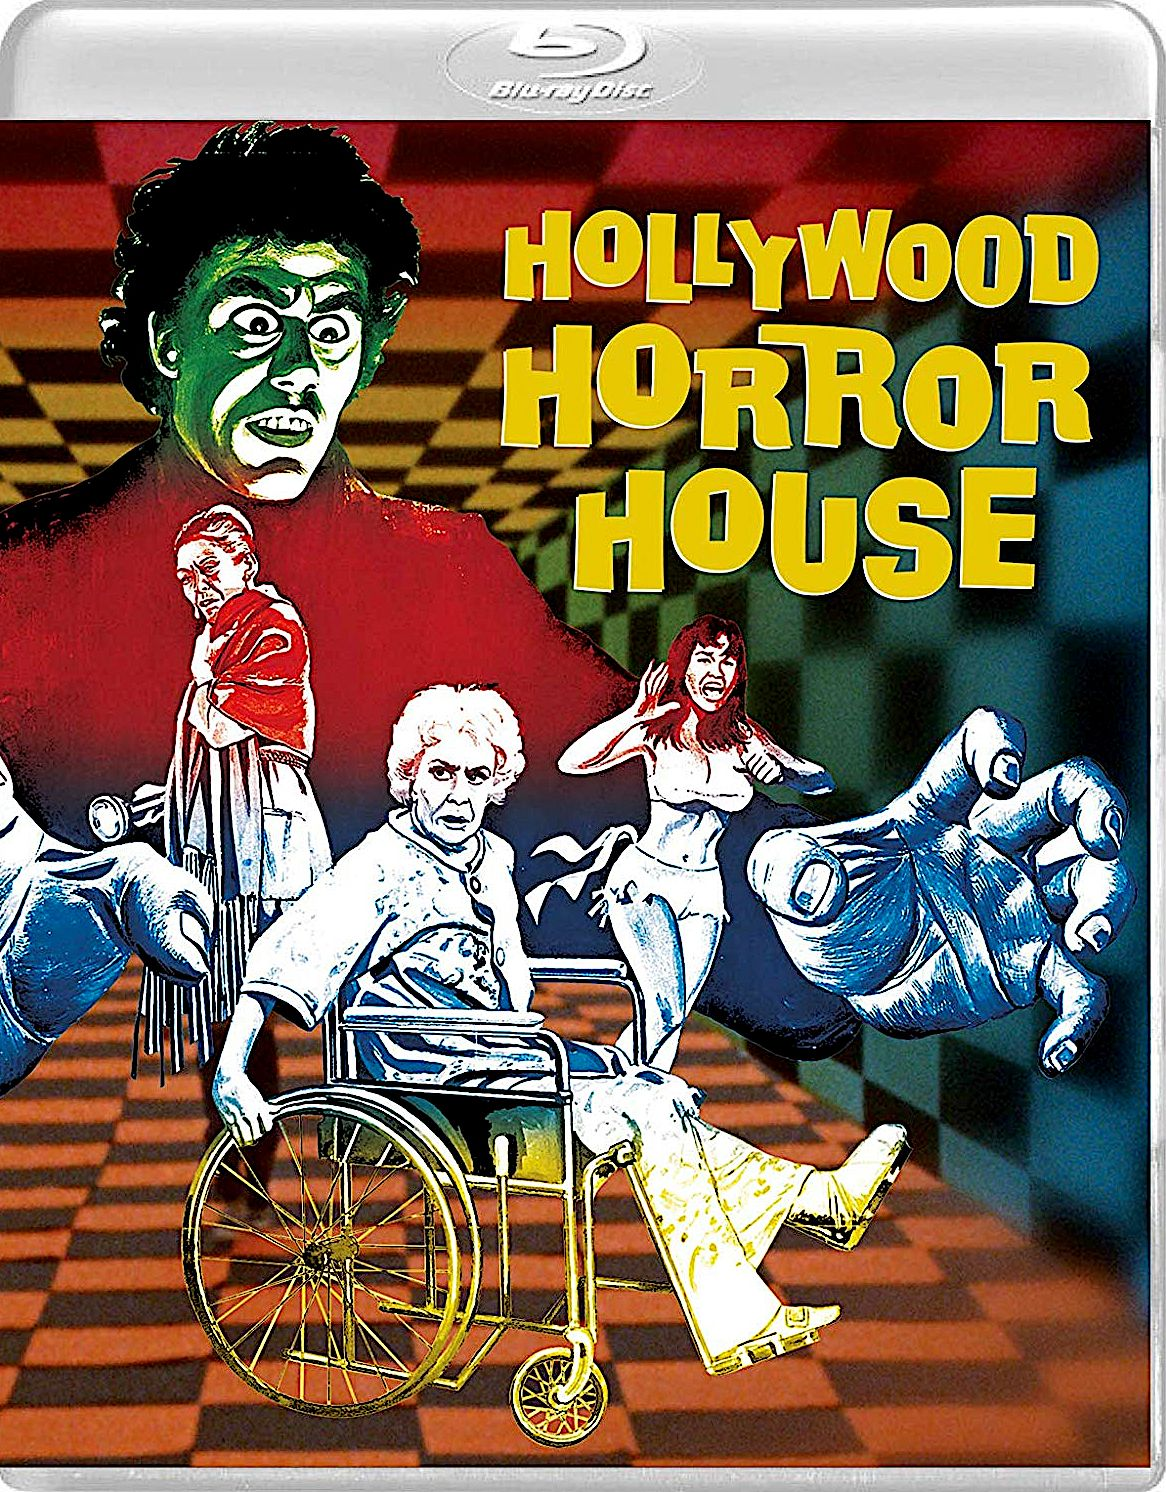 HOLLYWOOD HORROR HOUSE BLURAY (VINEGAR SYNDROME) in 2020